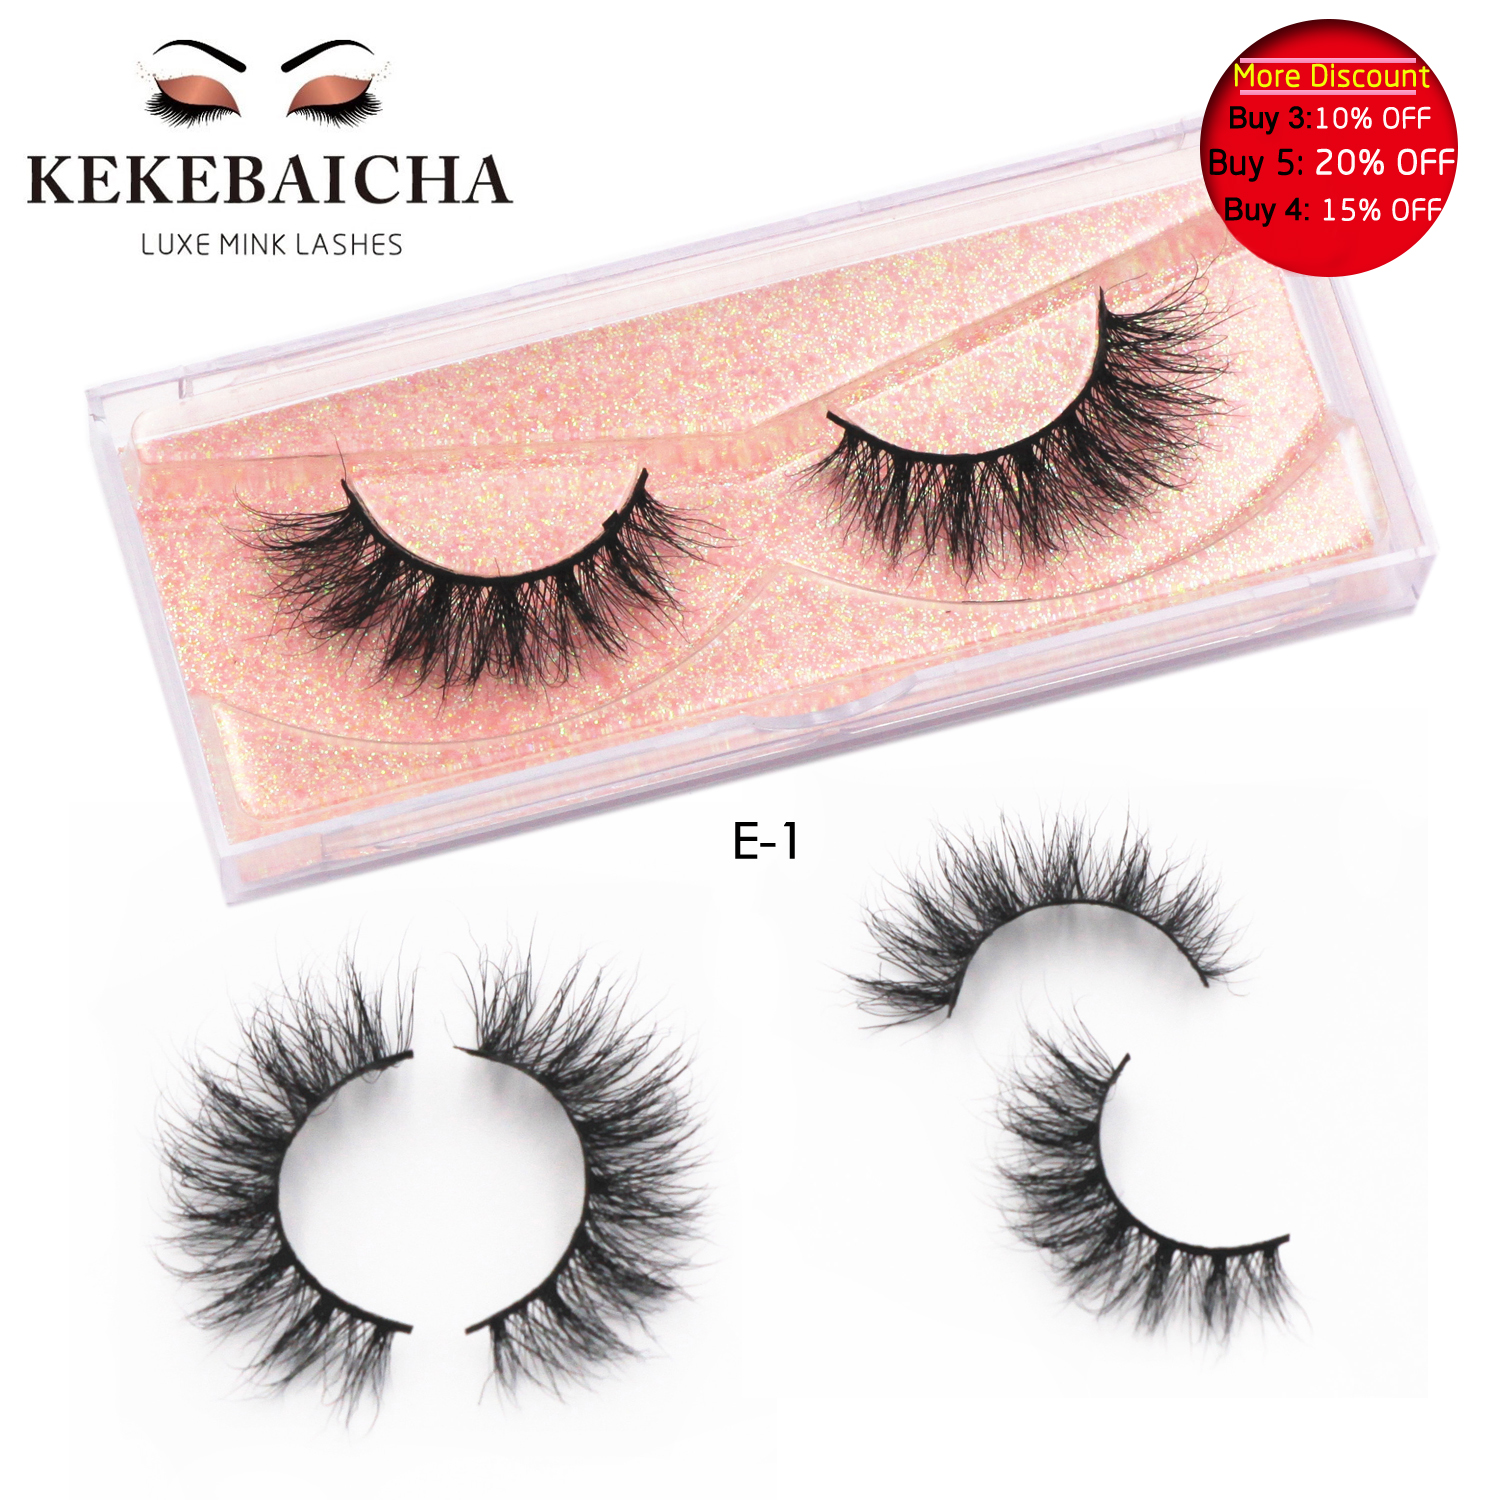 KEKEBAICHA 3D Mink Eyelashes Cruelty Free Handmade Medium Volume Mink Lash Natural Lashes Soft False Eyelashes Makeup Cilios E01